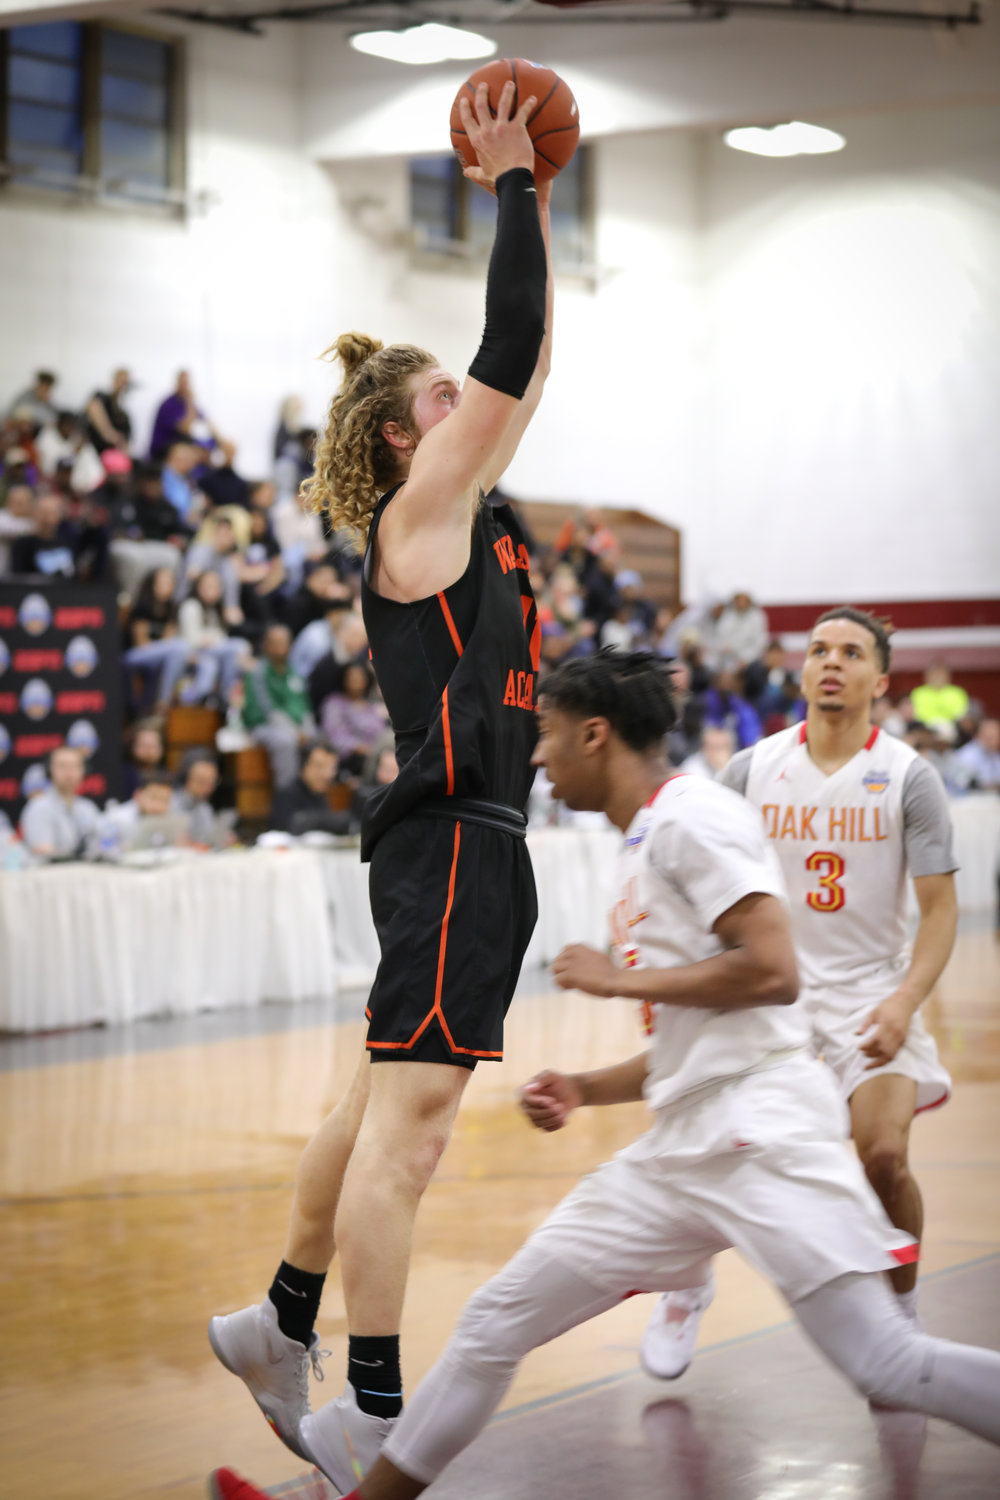 BBall_Geico_Nationals_2019 (46 of 59).jpg